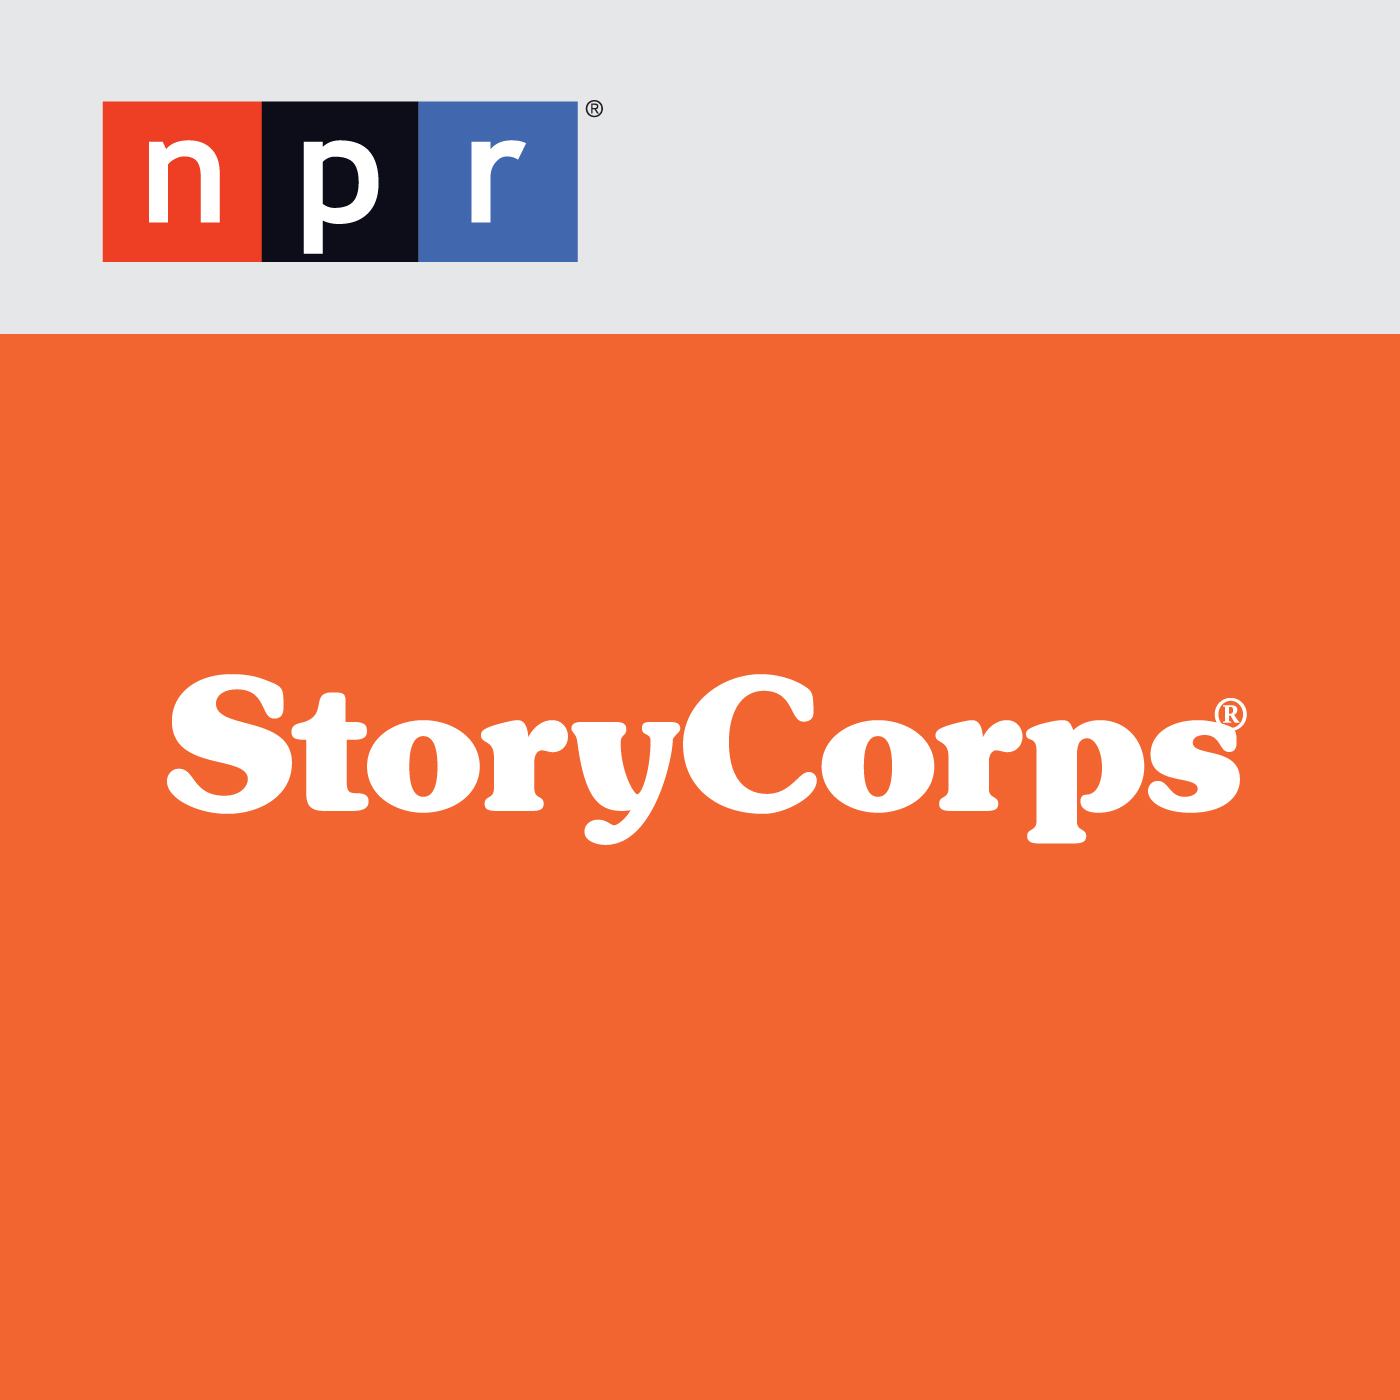 NPR: StoryCorps Podcast